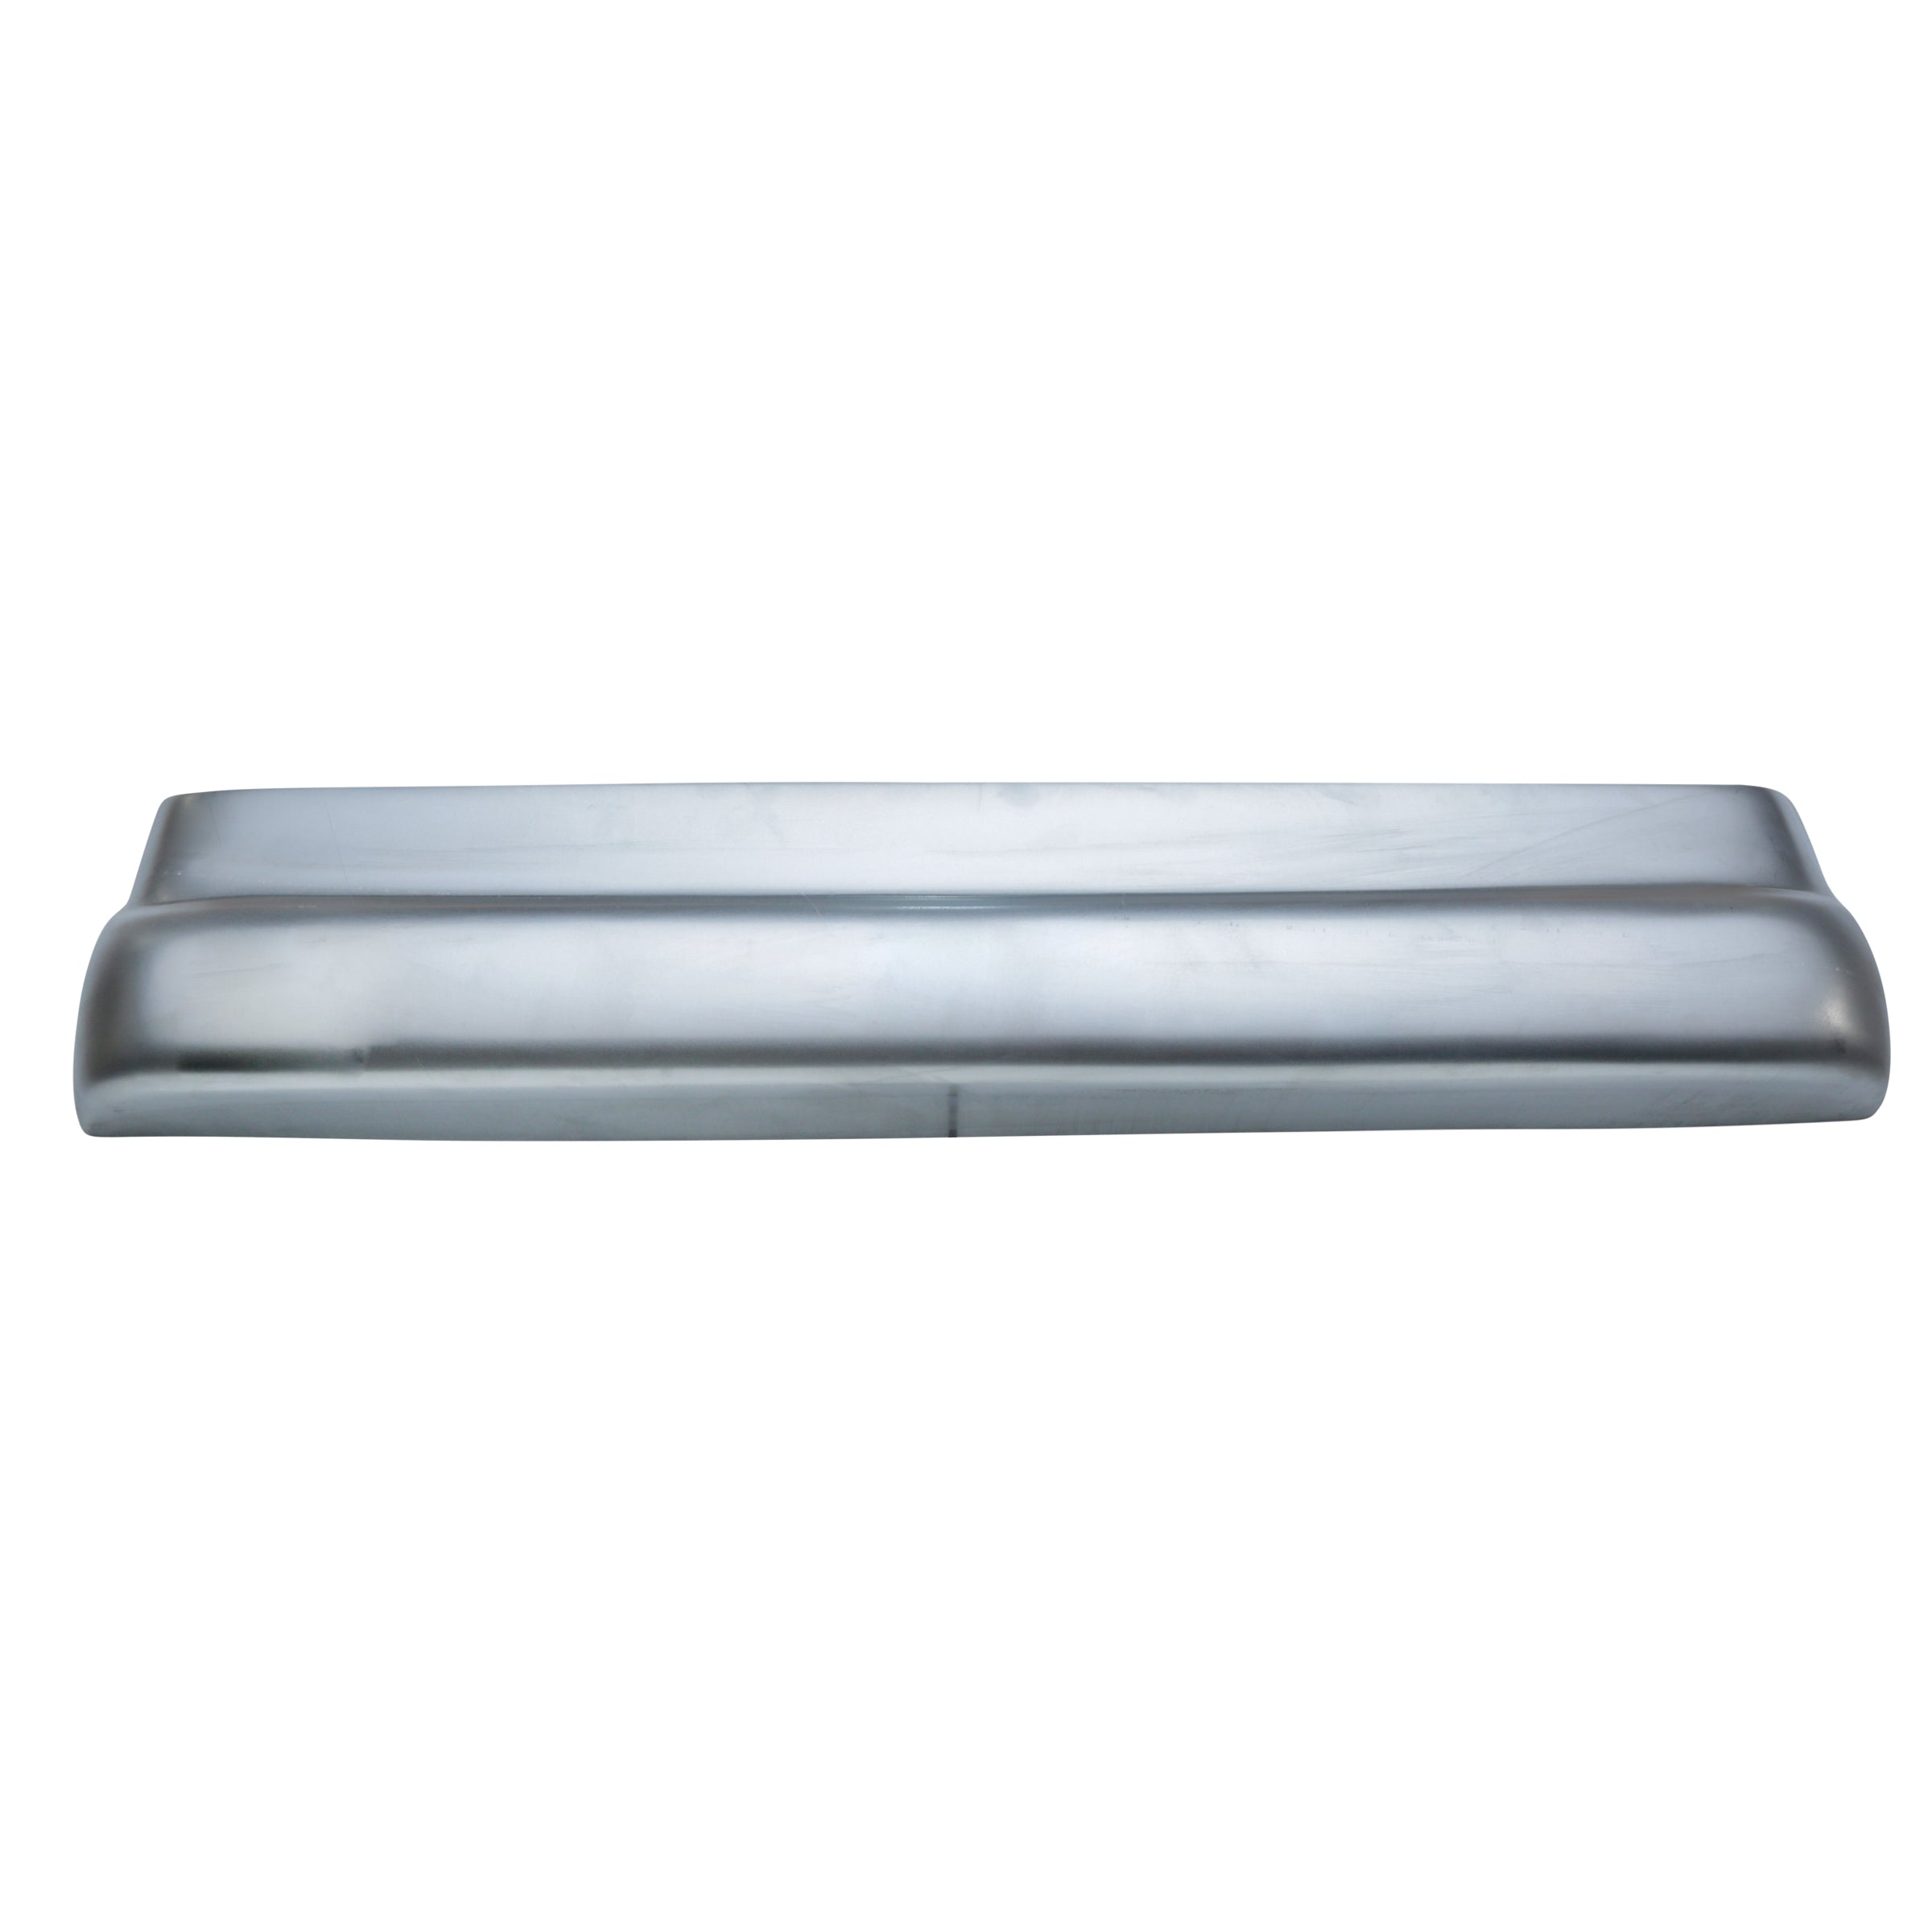 Below Trunk Lid Panel (Tail Pan) • 1935-36 Ford Standard & Deluxe Humpback Sedan